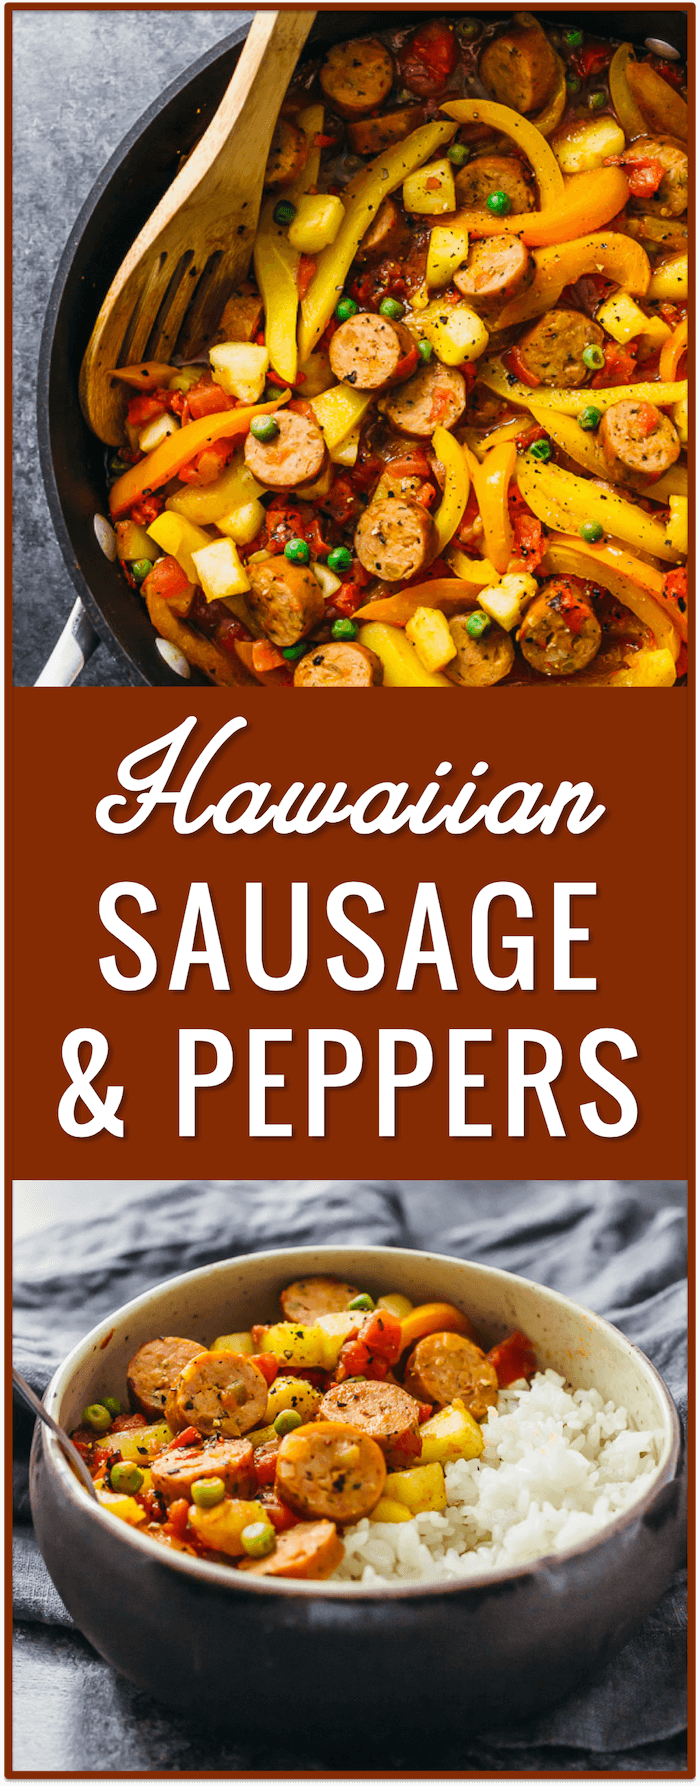 Hawaiian sausage and peppers with rice, easy, recipe, dinner, lunch, pineapples, slow cooker, italian, in oven, sauteed, skillet, crockpot, pasta, sandwich, baked, potatoes